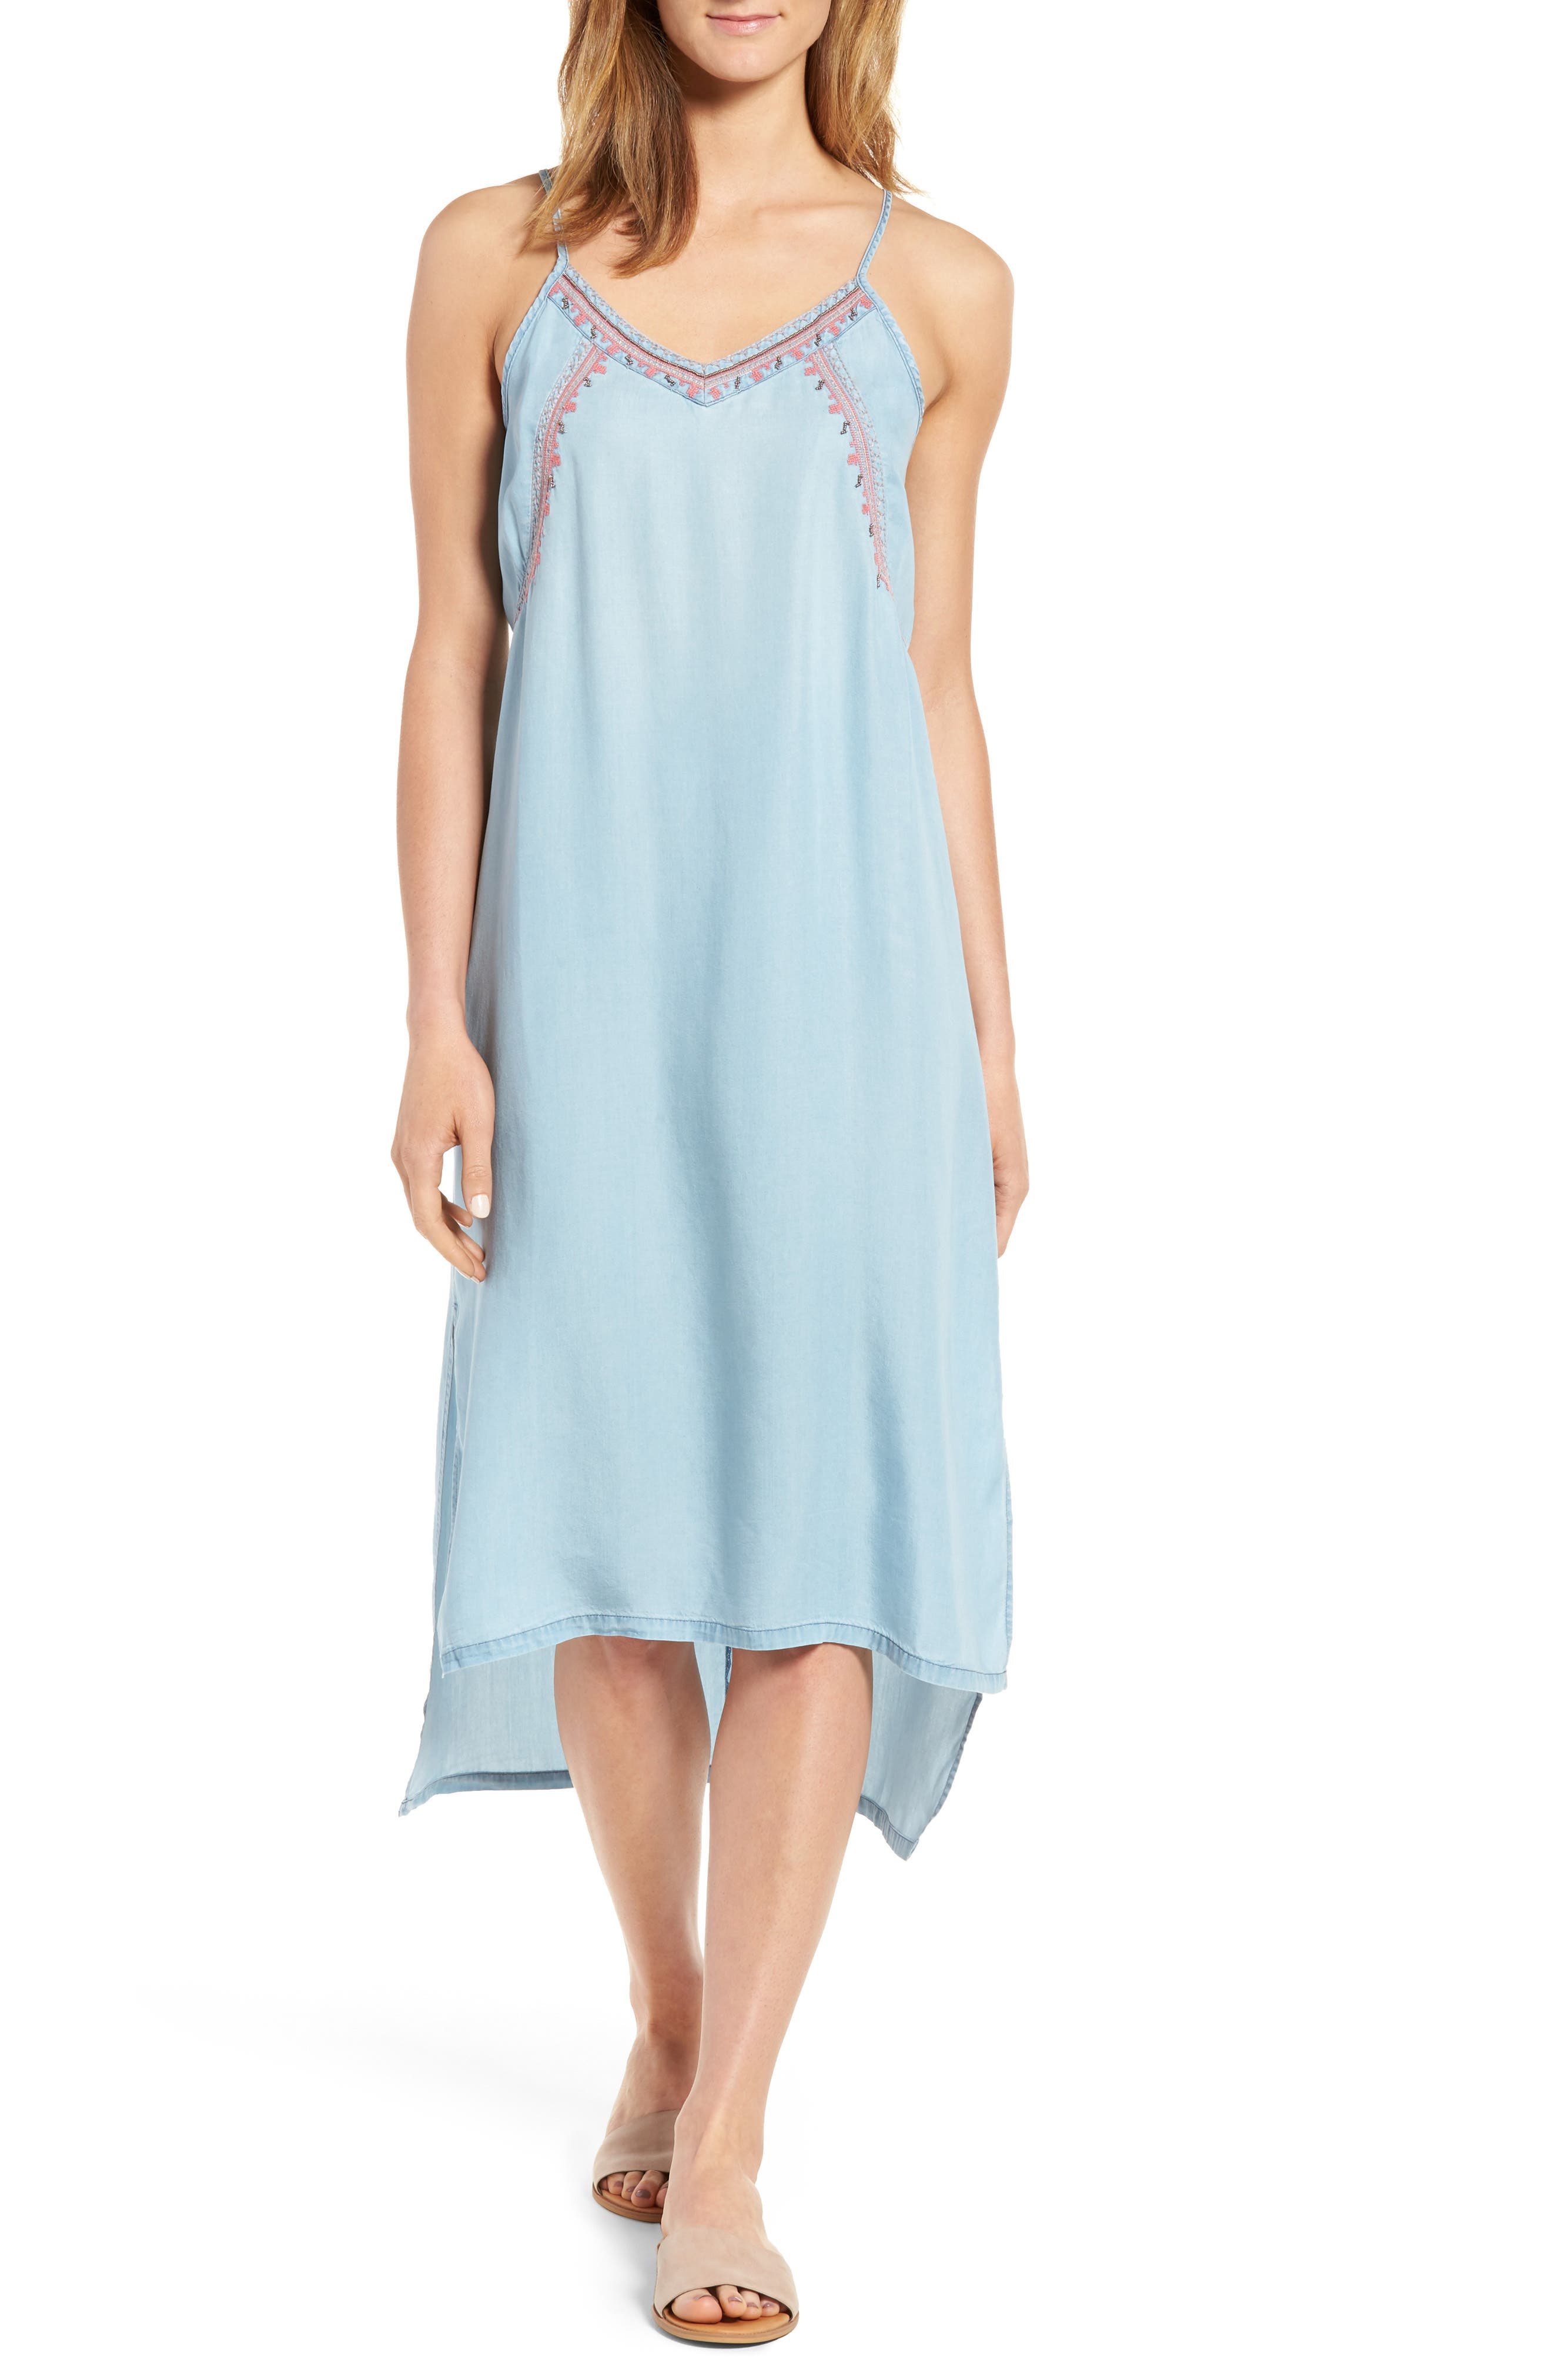 Alternate Image 1 Selected - Billy T Embellished High/Low Chambray Slipdress